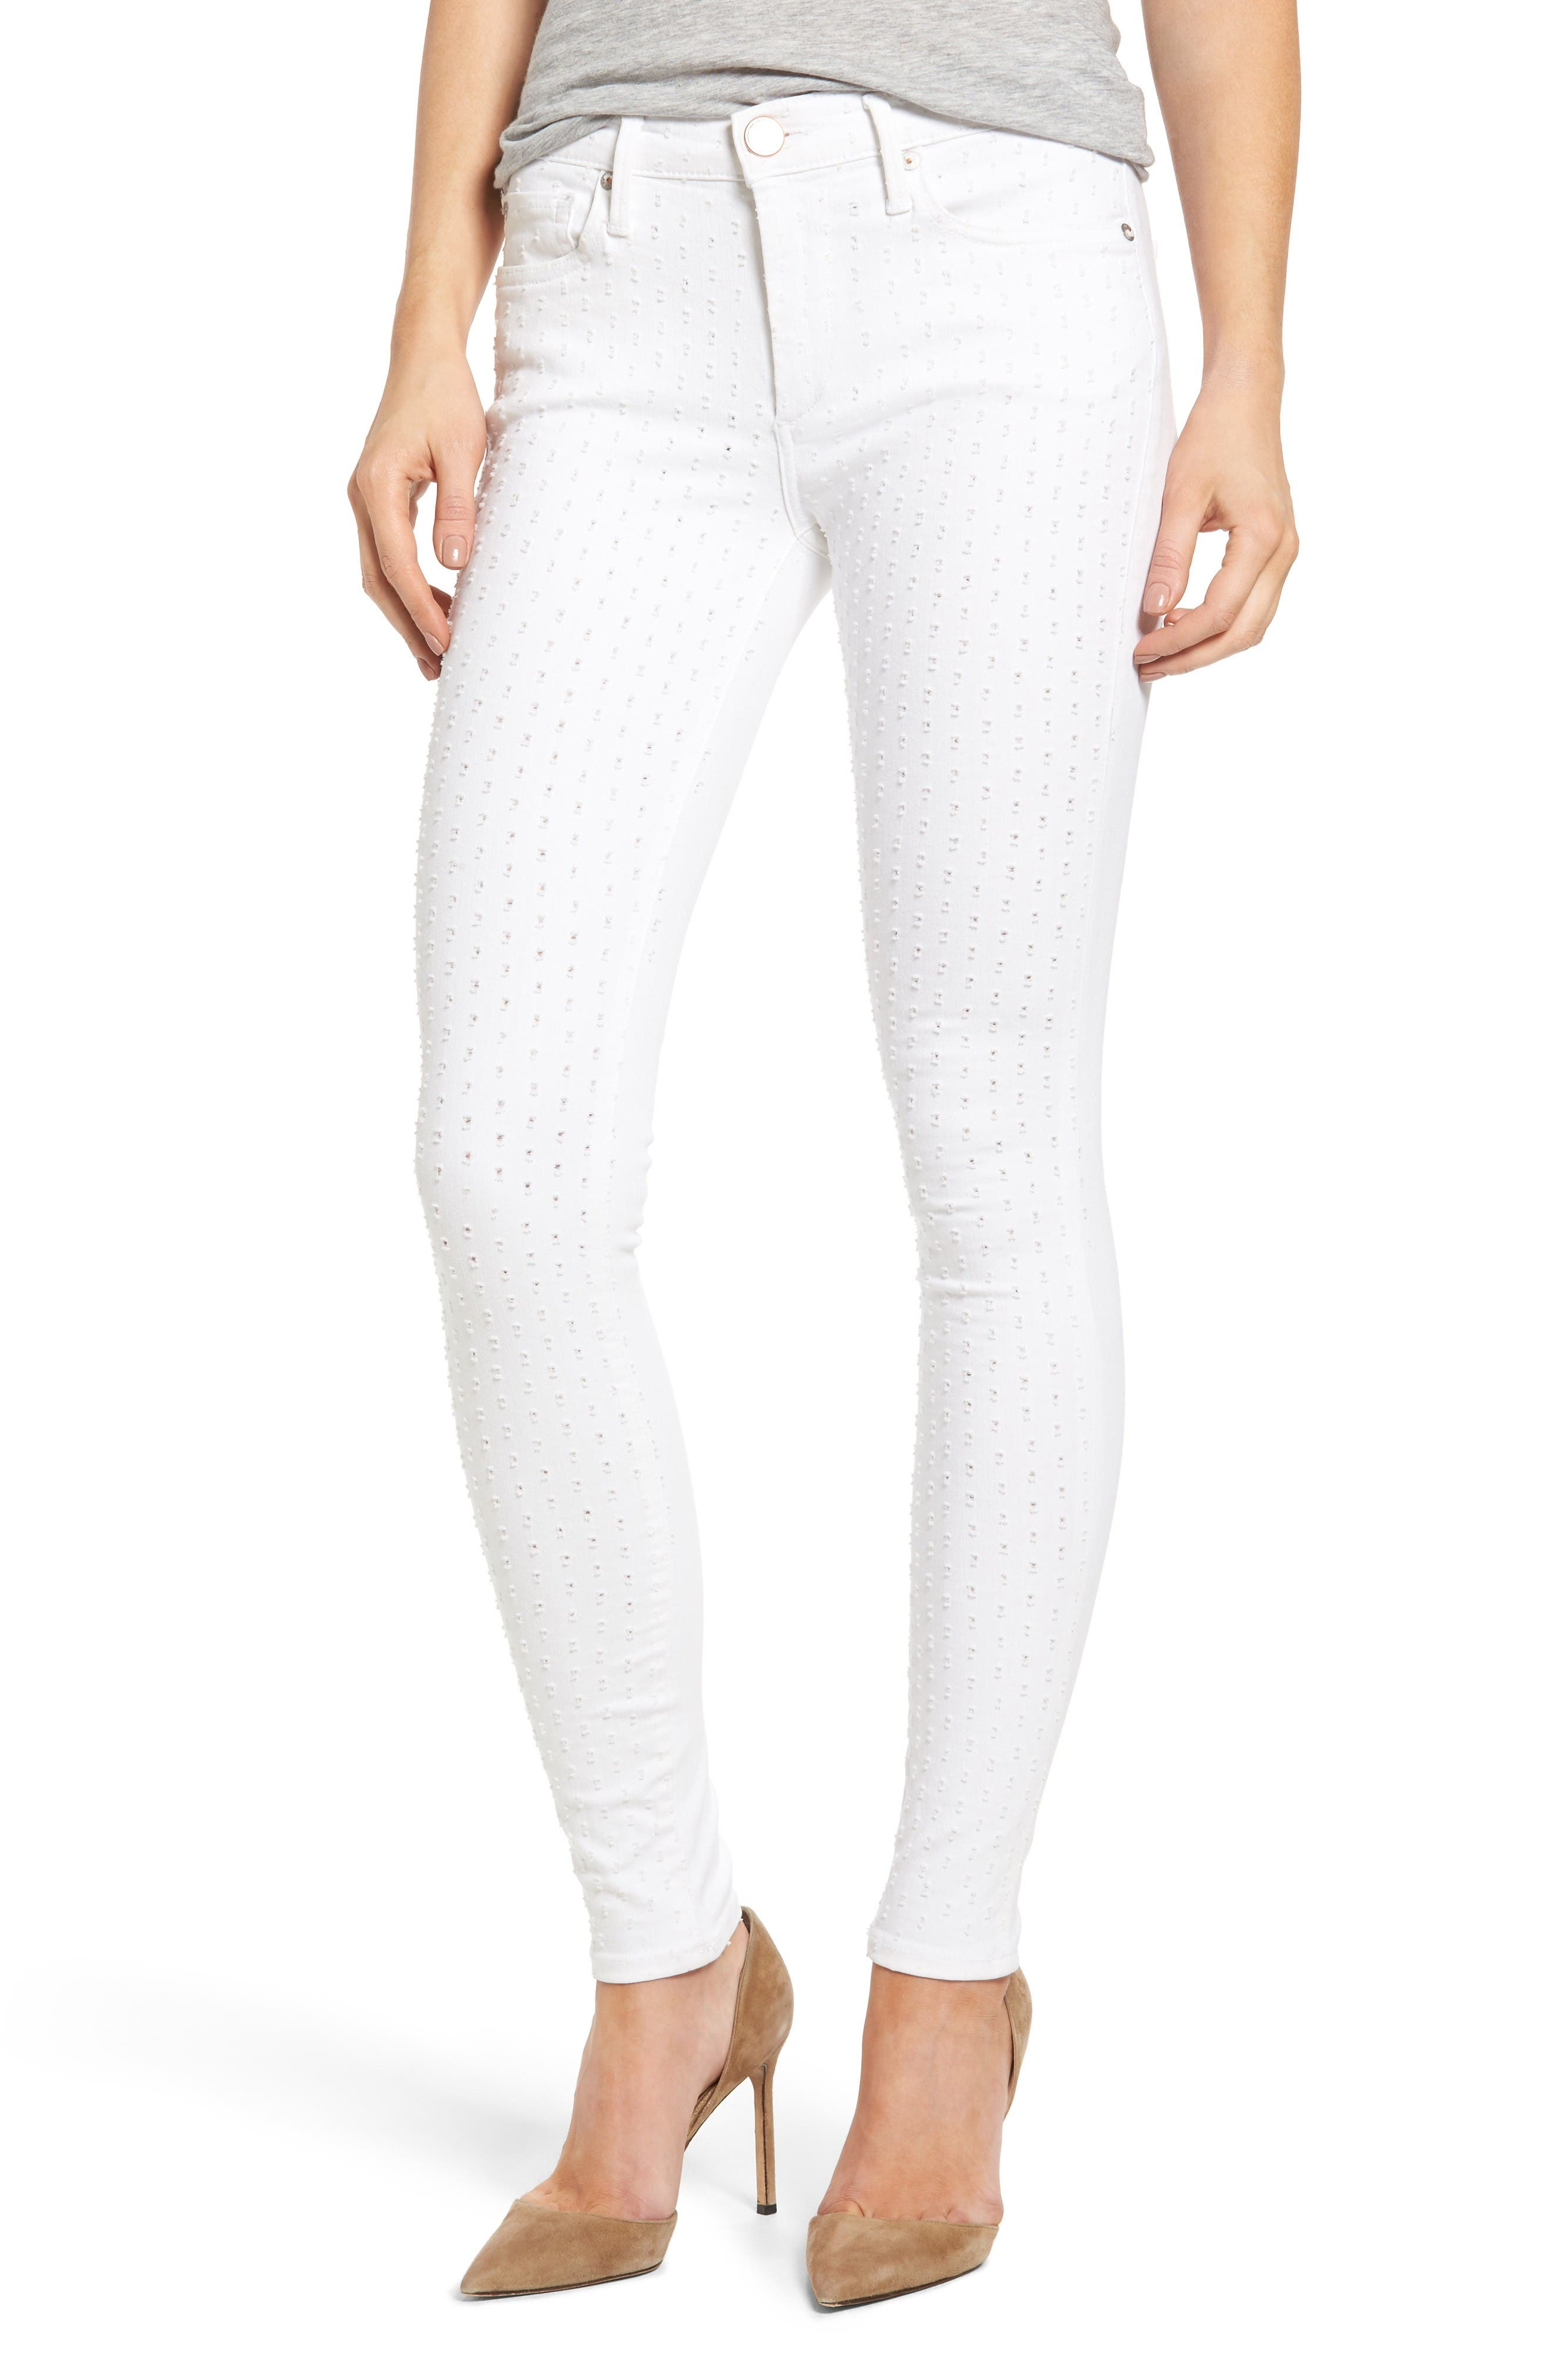 True Religion Brand Jeans Halle Eyelet Skinny Jeans (Optic White)